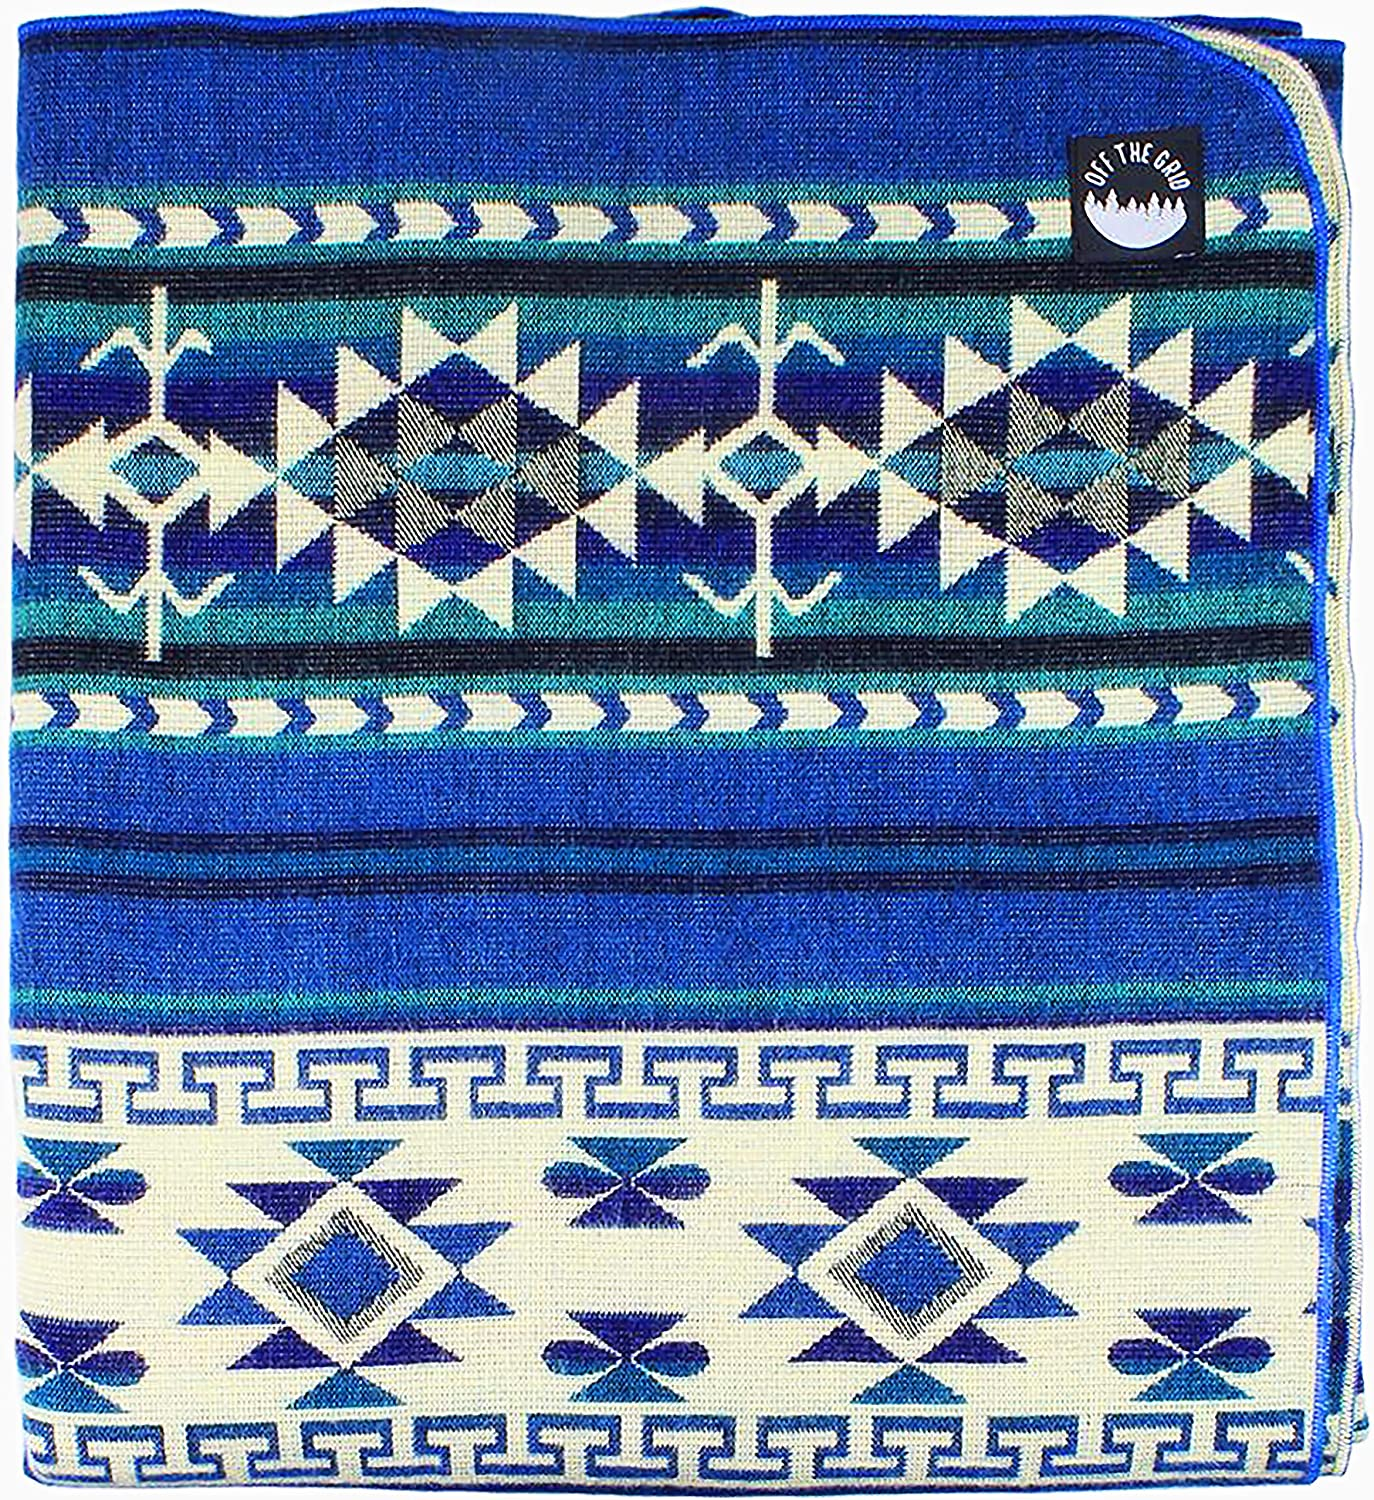 Off the Grid Inca Fuzzy Ecuadorian Blanket - Aztec/Southwest Artisanal Style - Use As Fall Throw Blanket, Camp Blanket, or Fluffy Cover for Indoors and Outdoors (Blue, Medium)